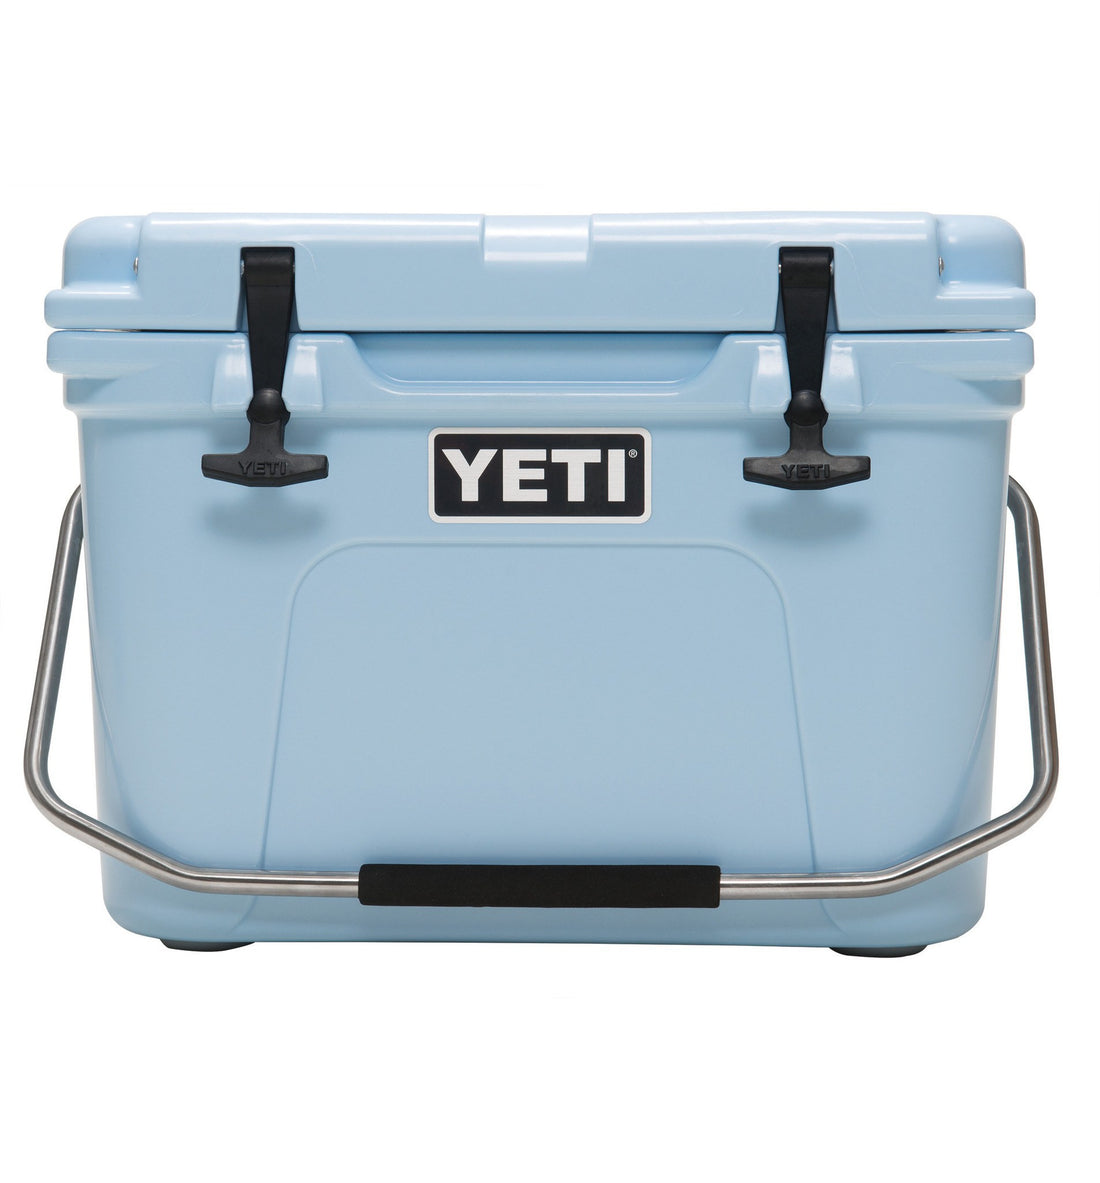 Yeti Roadie - Outdoor Living/Travel - Iron and Resin